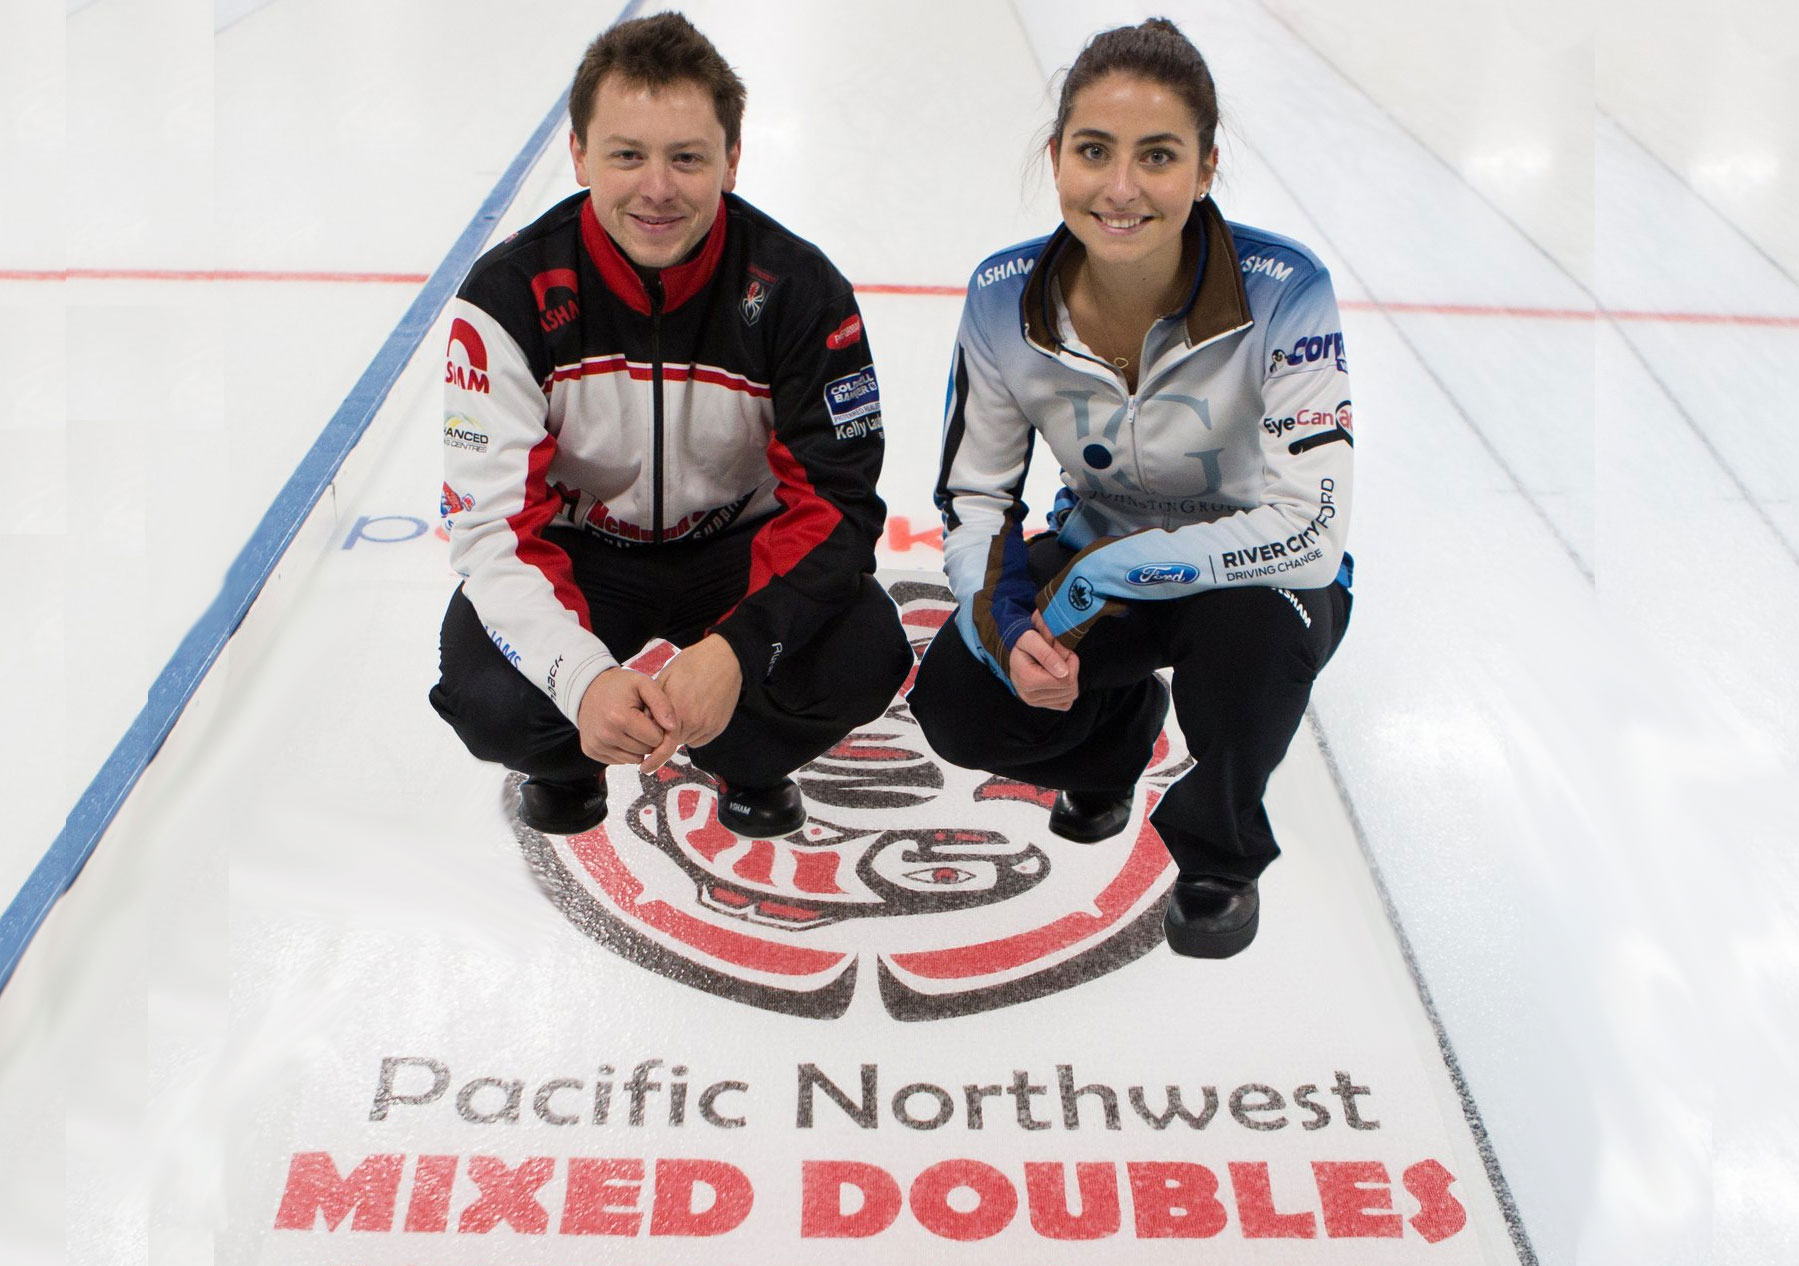 BIRCHARD/GUNNLAUGSON WIN PACIFIC NORTHWEST MIXED DOUBLES INVITATIONAL